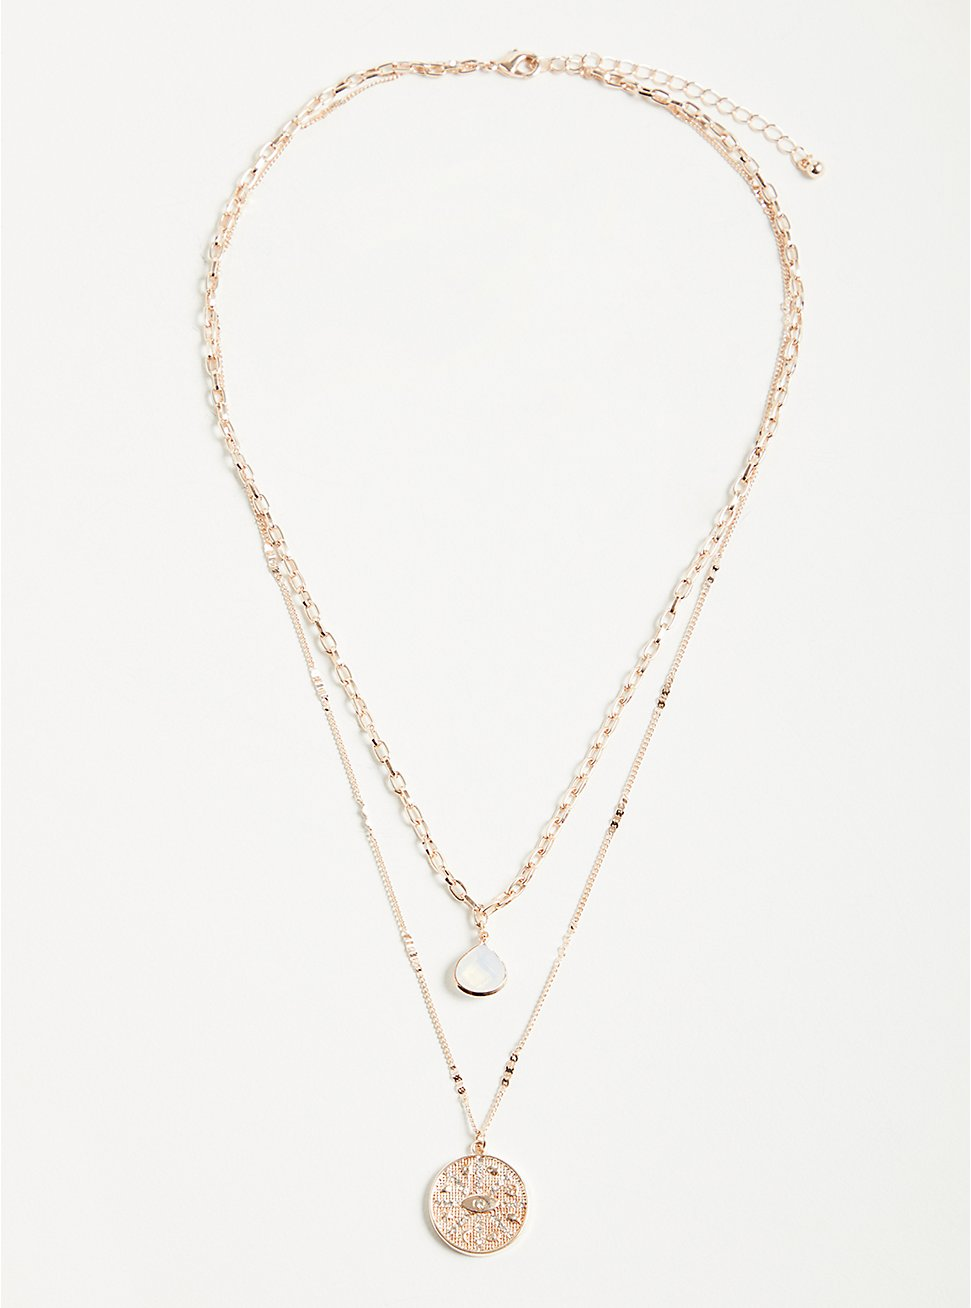 Plus Size Opal & Disk Layered Necklace - Rose Gold Tone, , hi-res